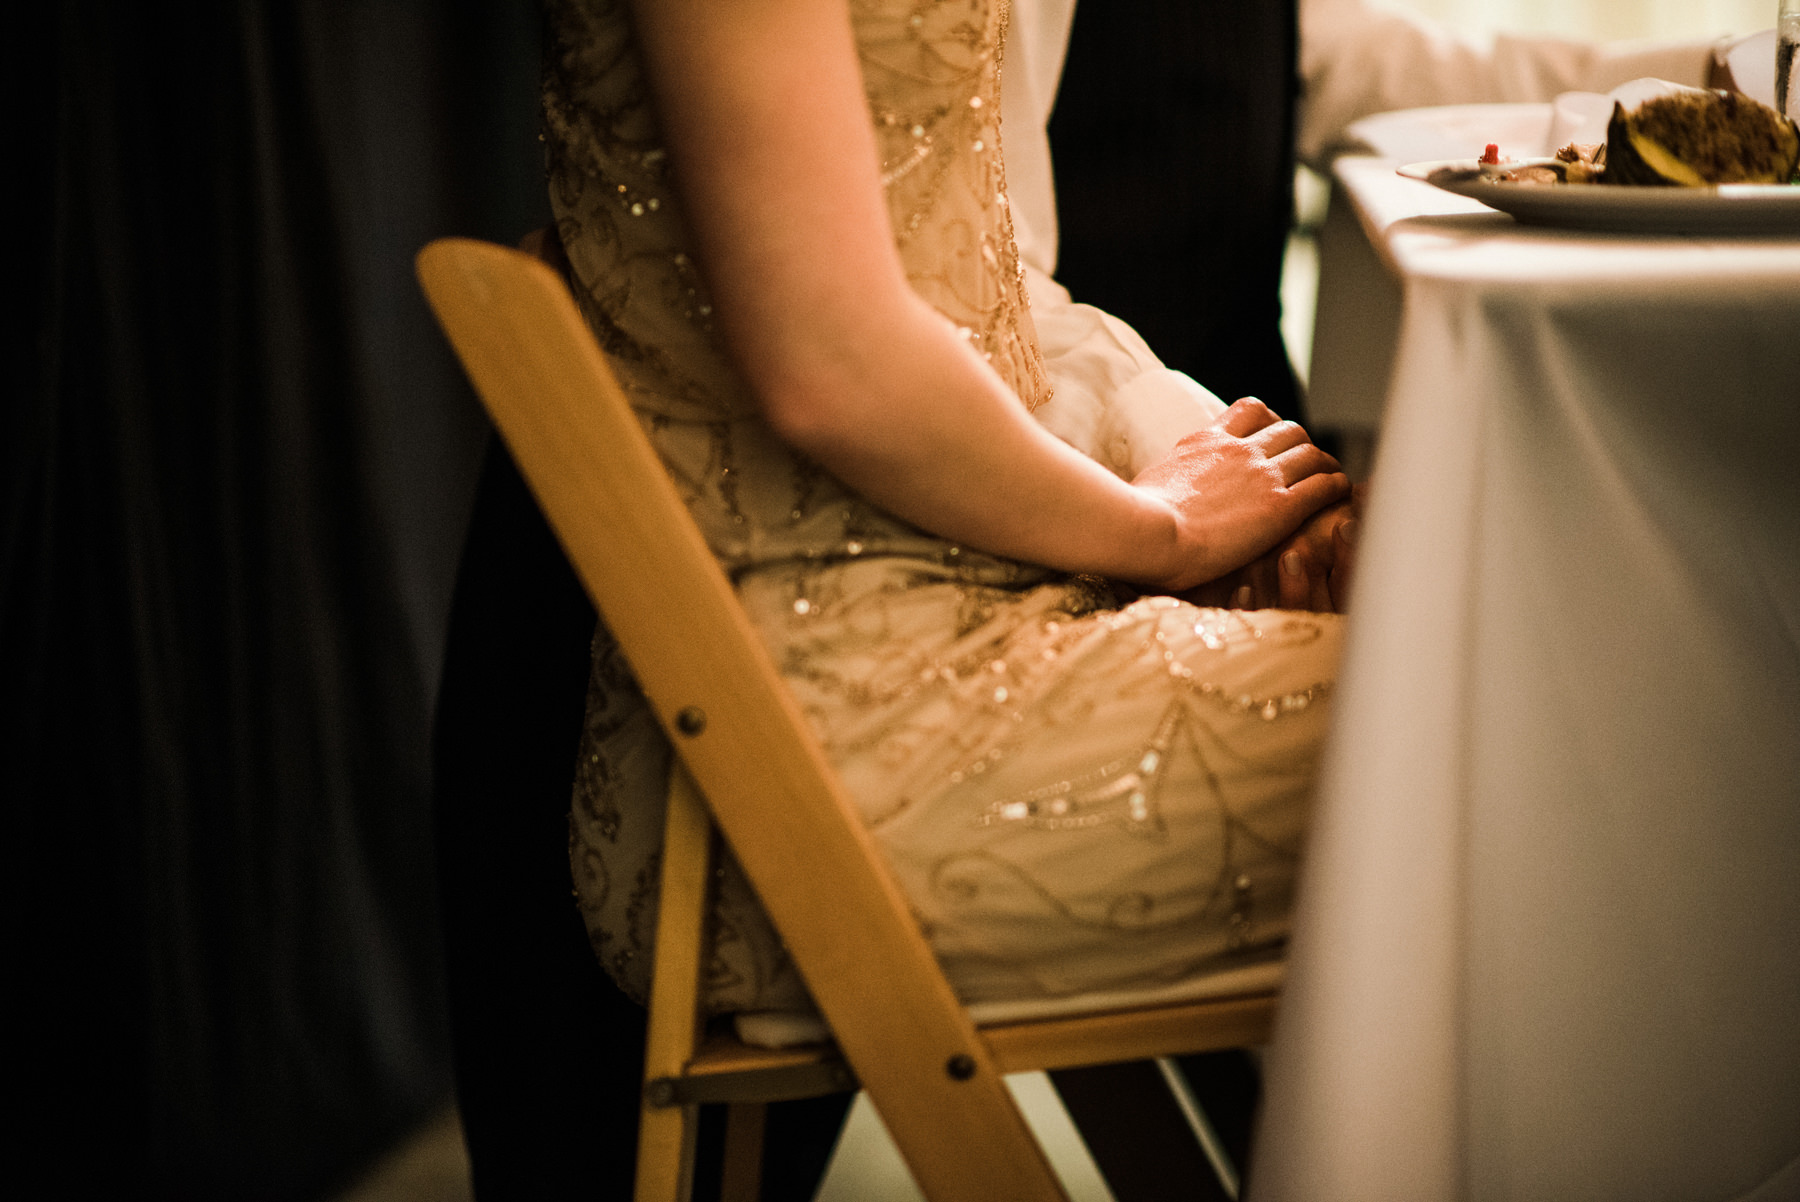 071-emotional-wedding-toasts-by-documentary-photographer-ryan-flynn.jpg